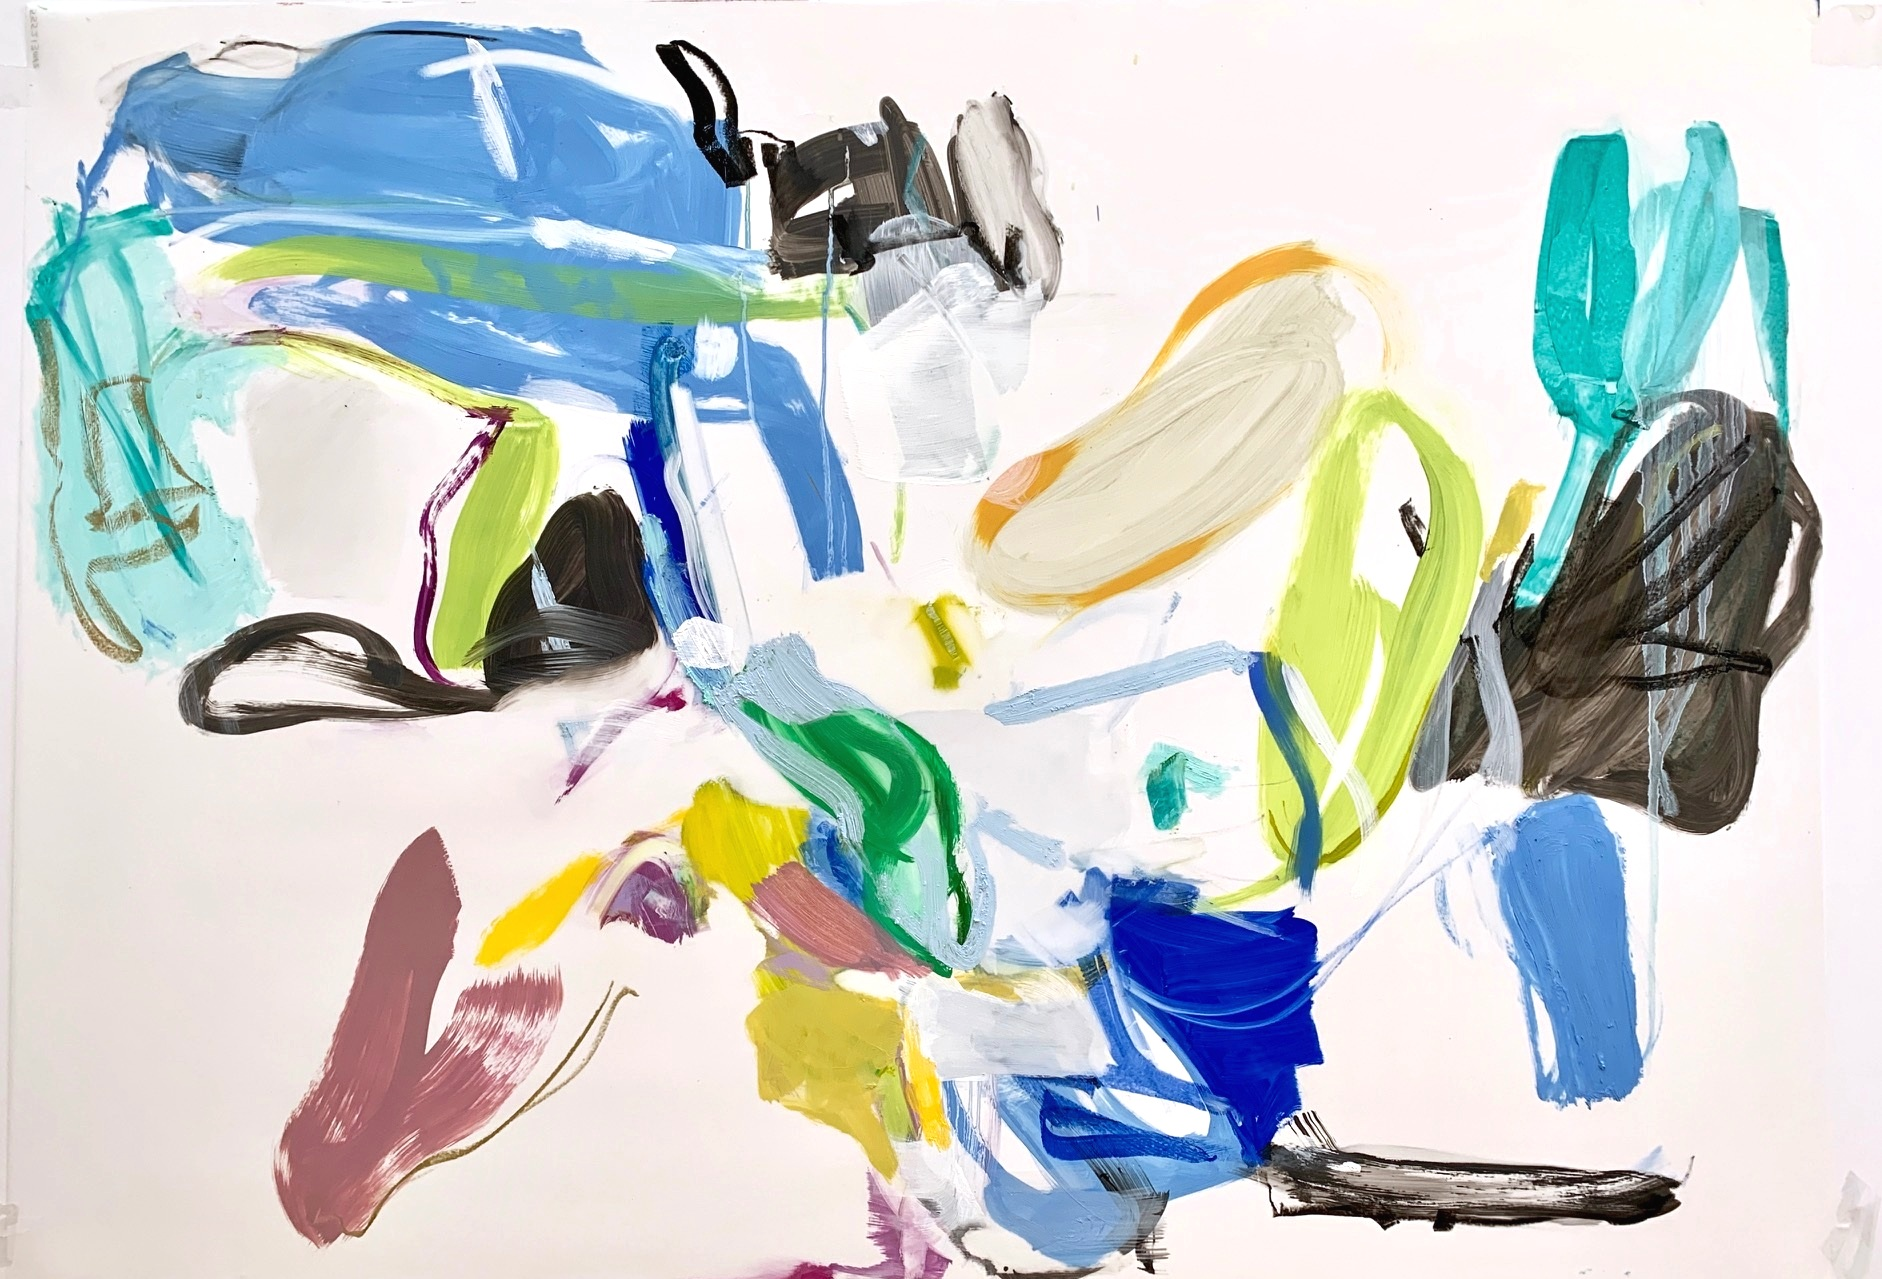 Five Seconds  2019 40 ½ x 29 inches Oil on Mylar